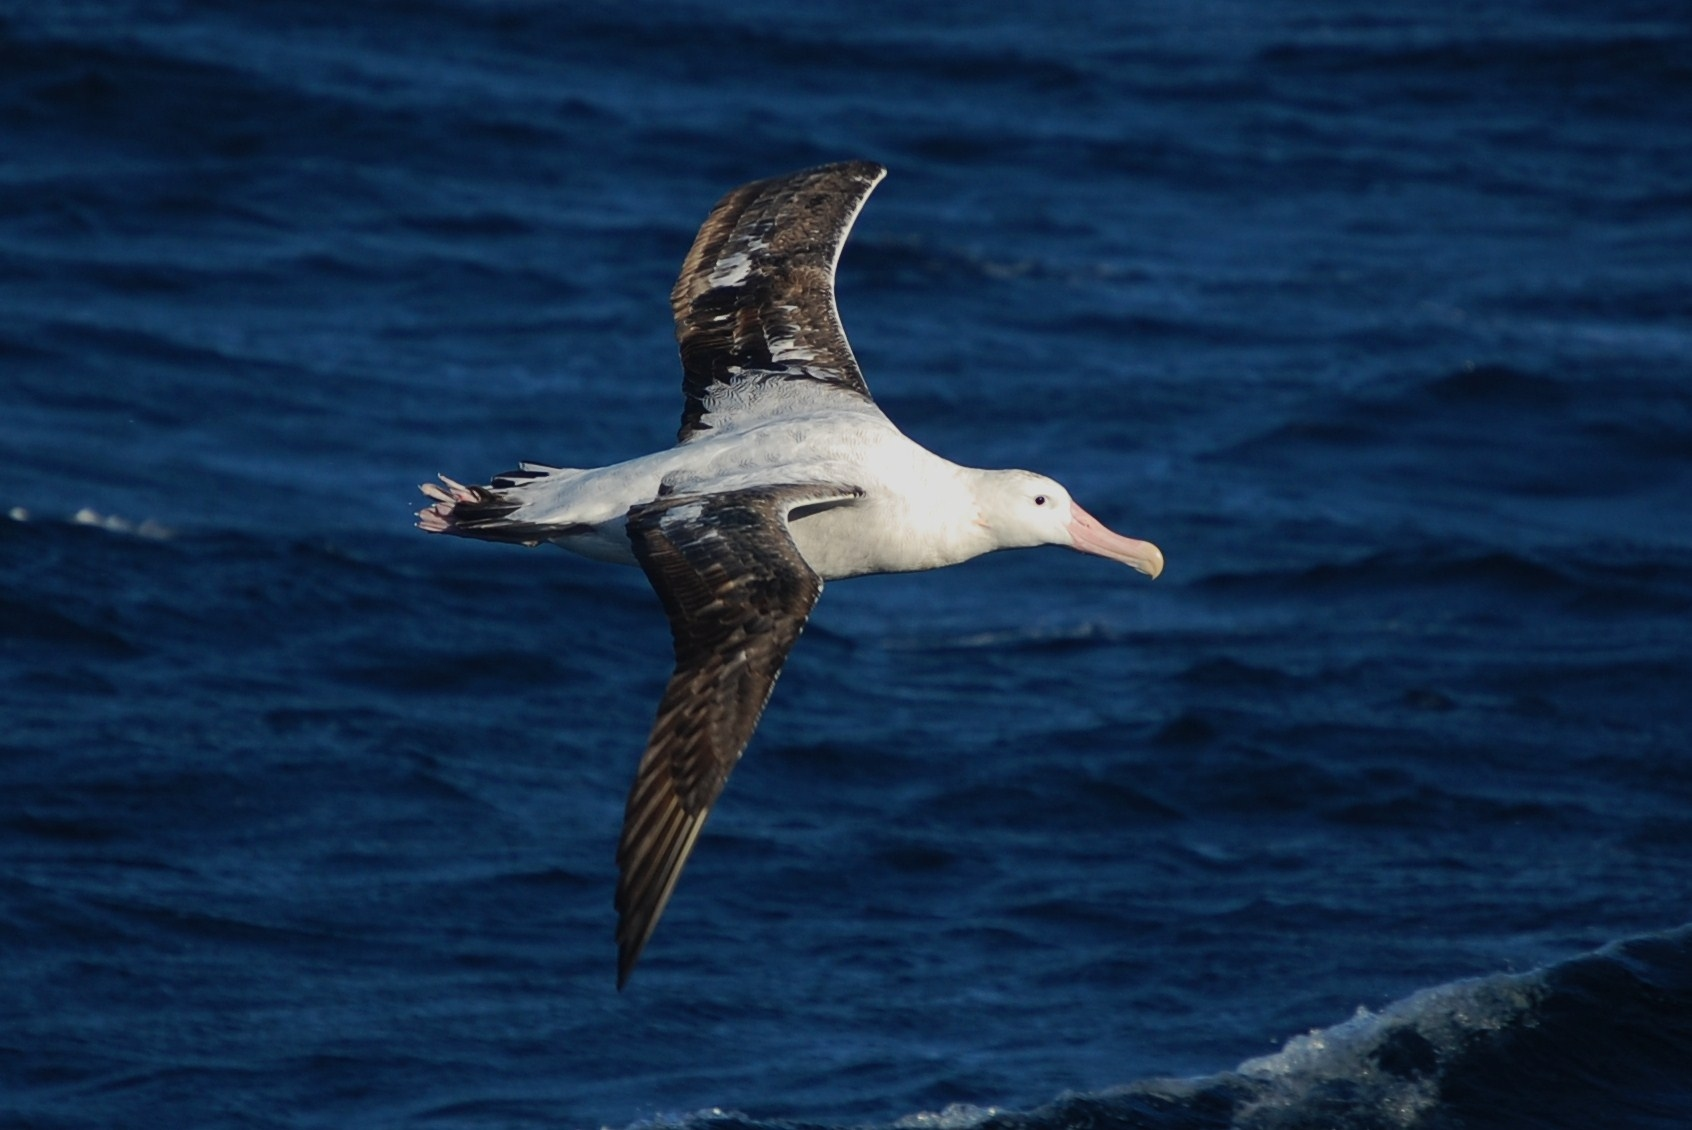 A wandering albatross in flight